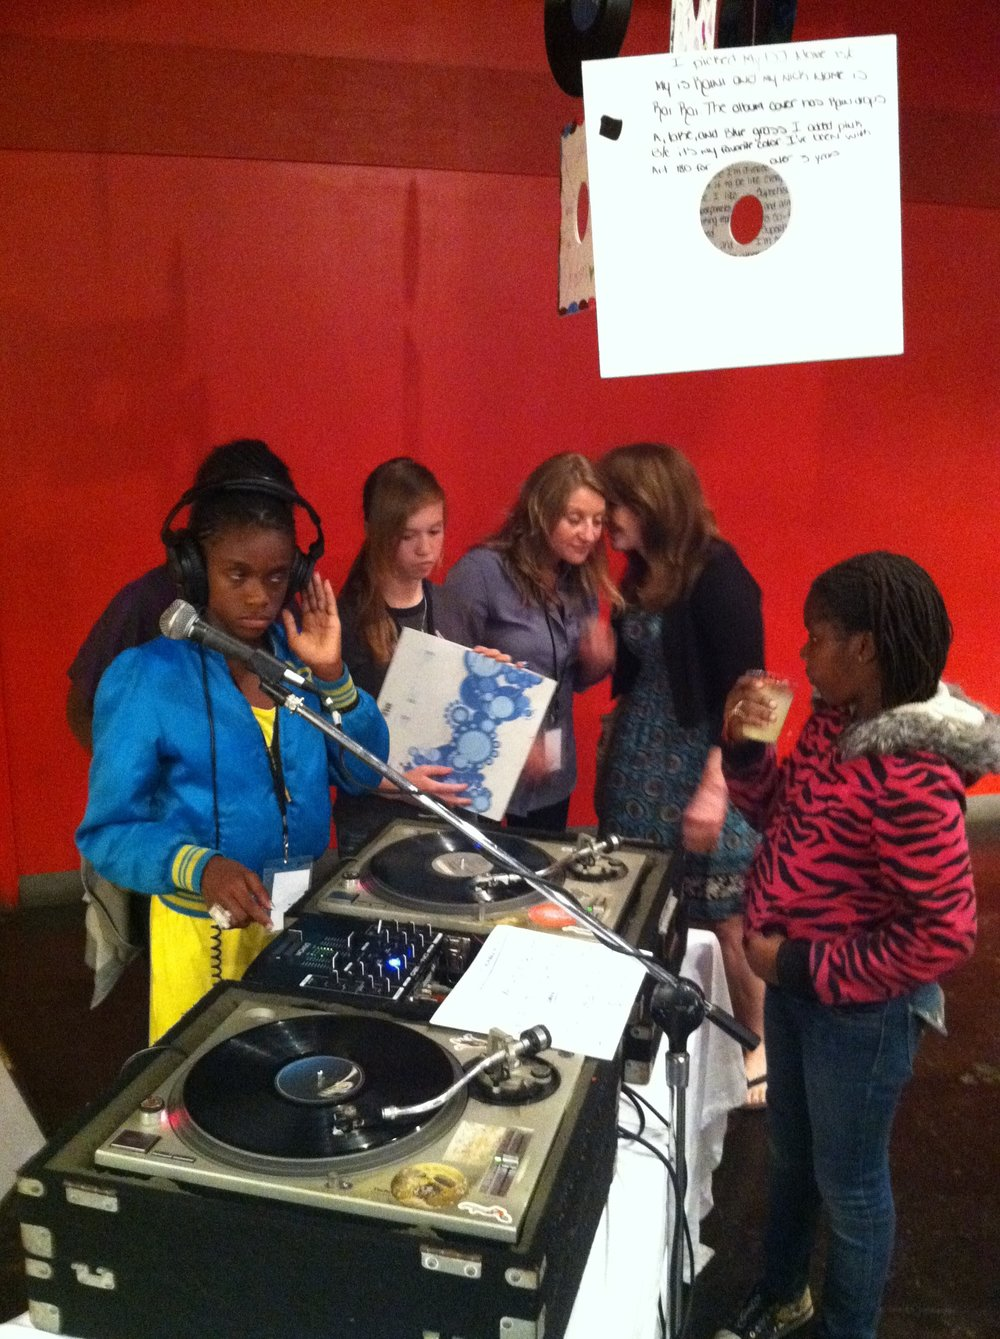 Participants in the DJ and Vinyl Appreciation Class providing the soundtrack for The Big Show (2010)